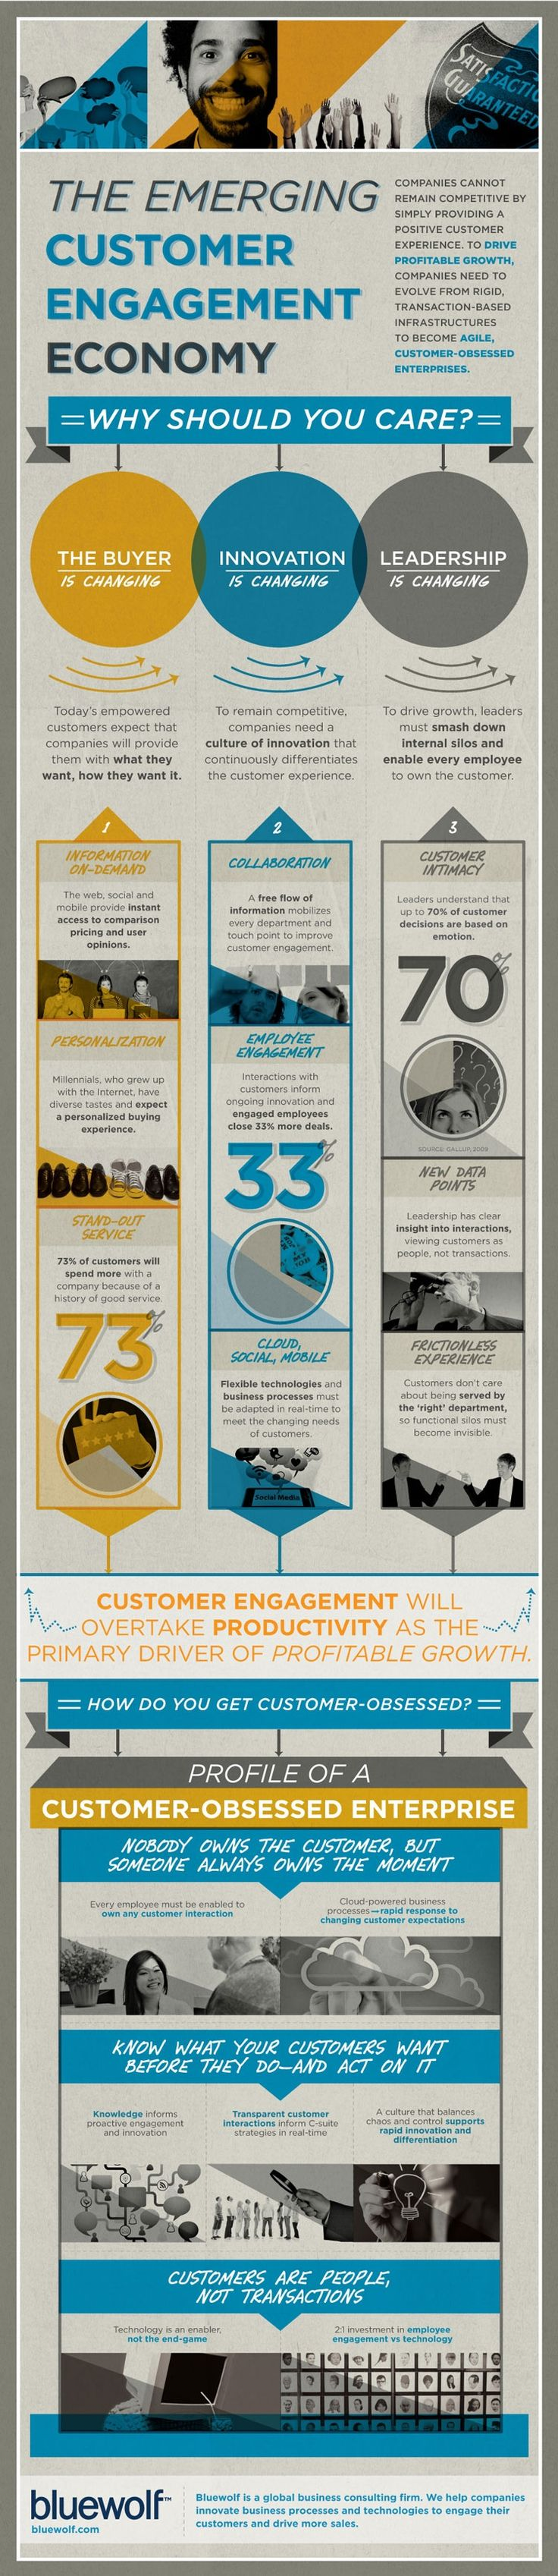 Great Infographic: The Emerging Customer Engagement Economy